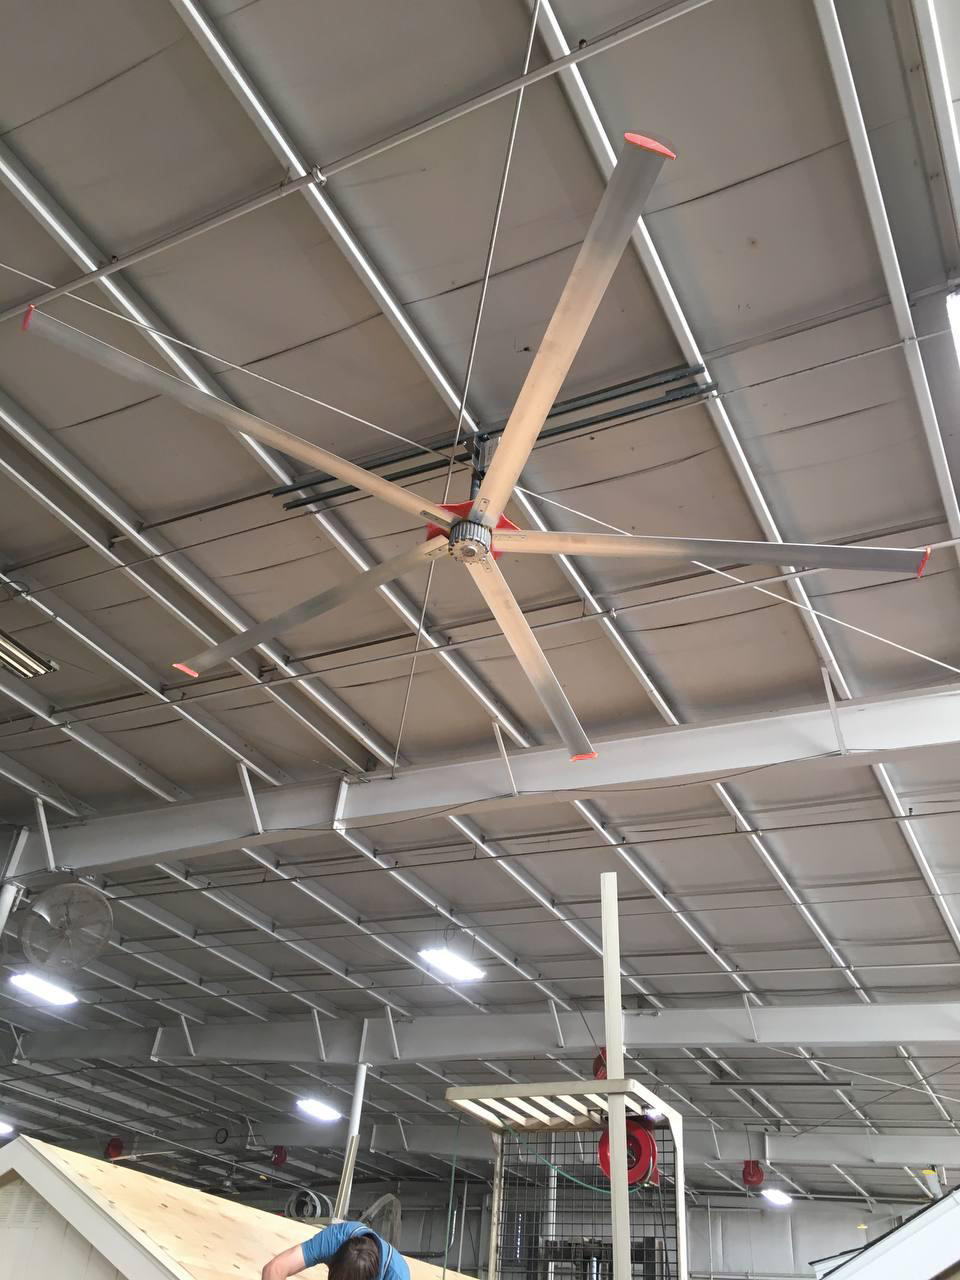 Ceiling fans in a shed building shop